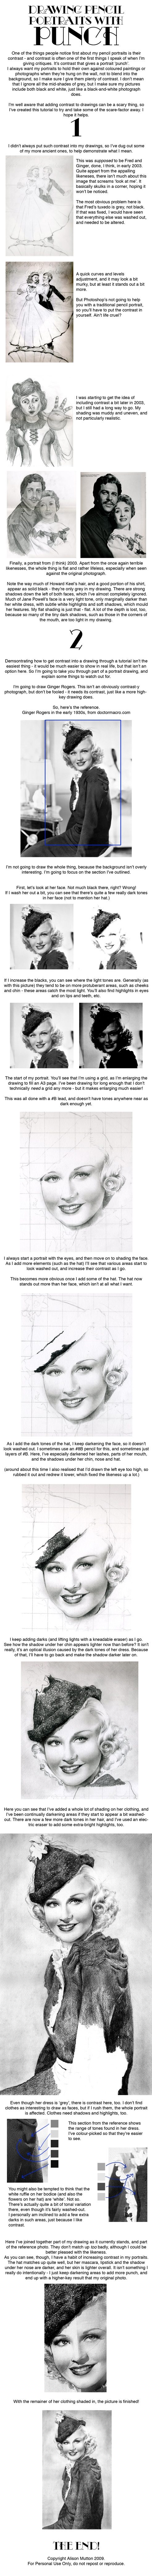 Tutorial: Portraits with Punch by Alene